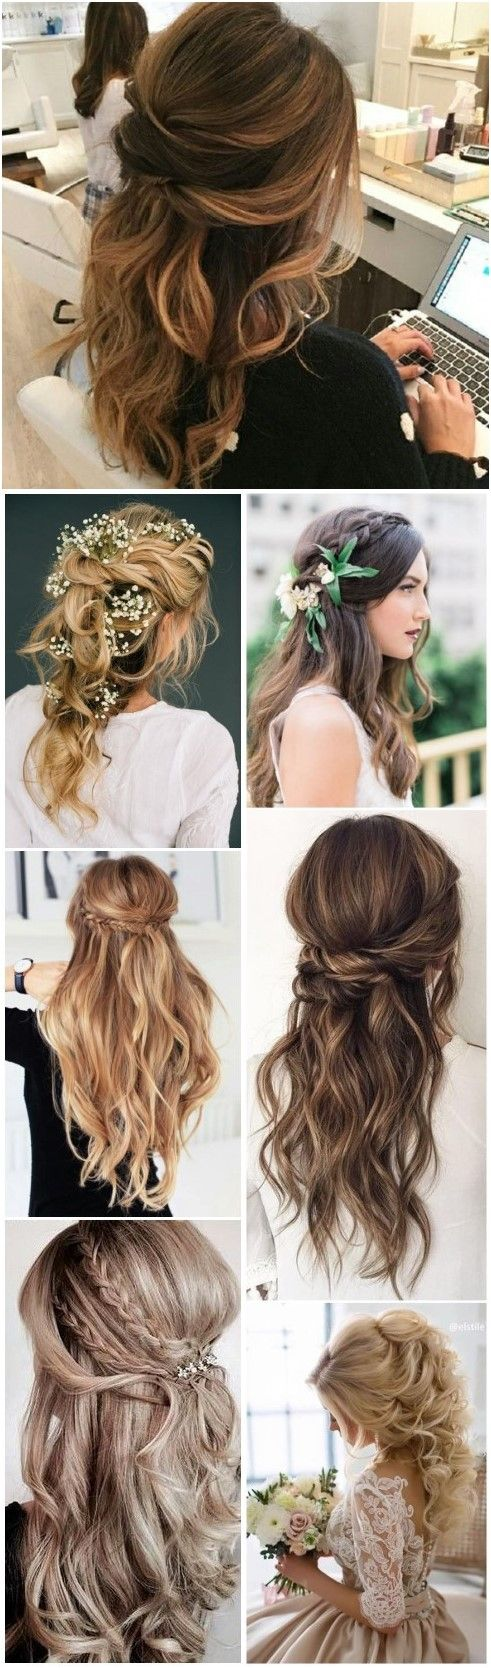 Yep, we're still loving the half-up, half-down look for your wedding day! Effortless, elegant and glamorous!